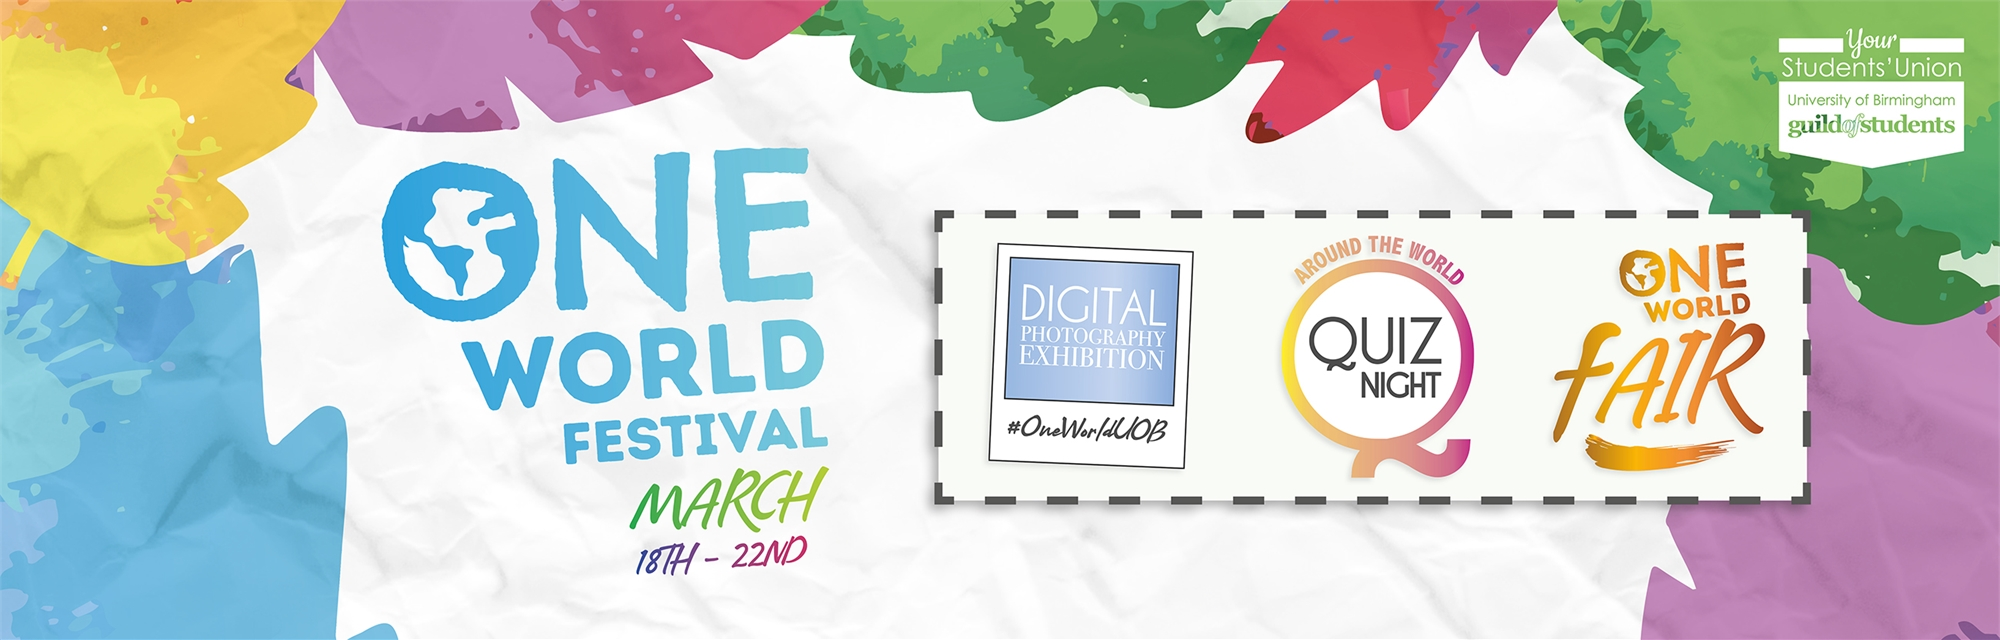 One World Festival - March 18th - 22nd 2019